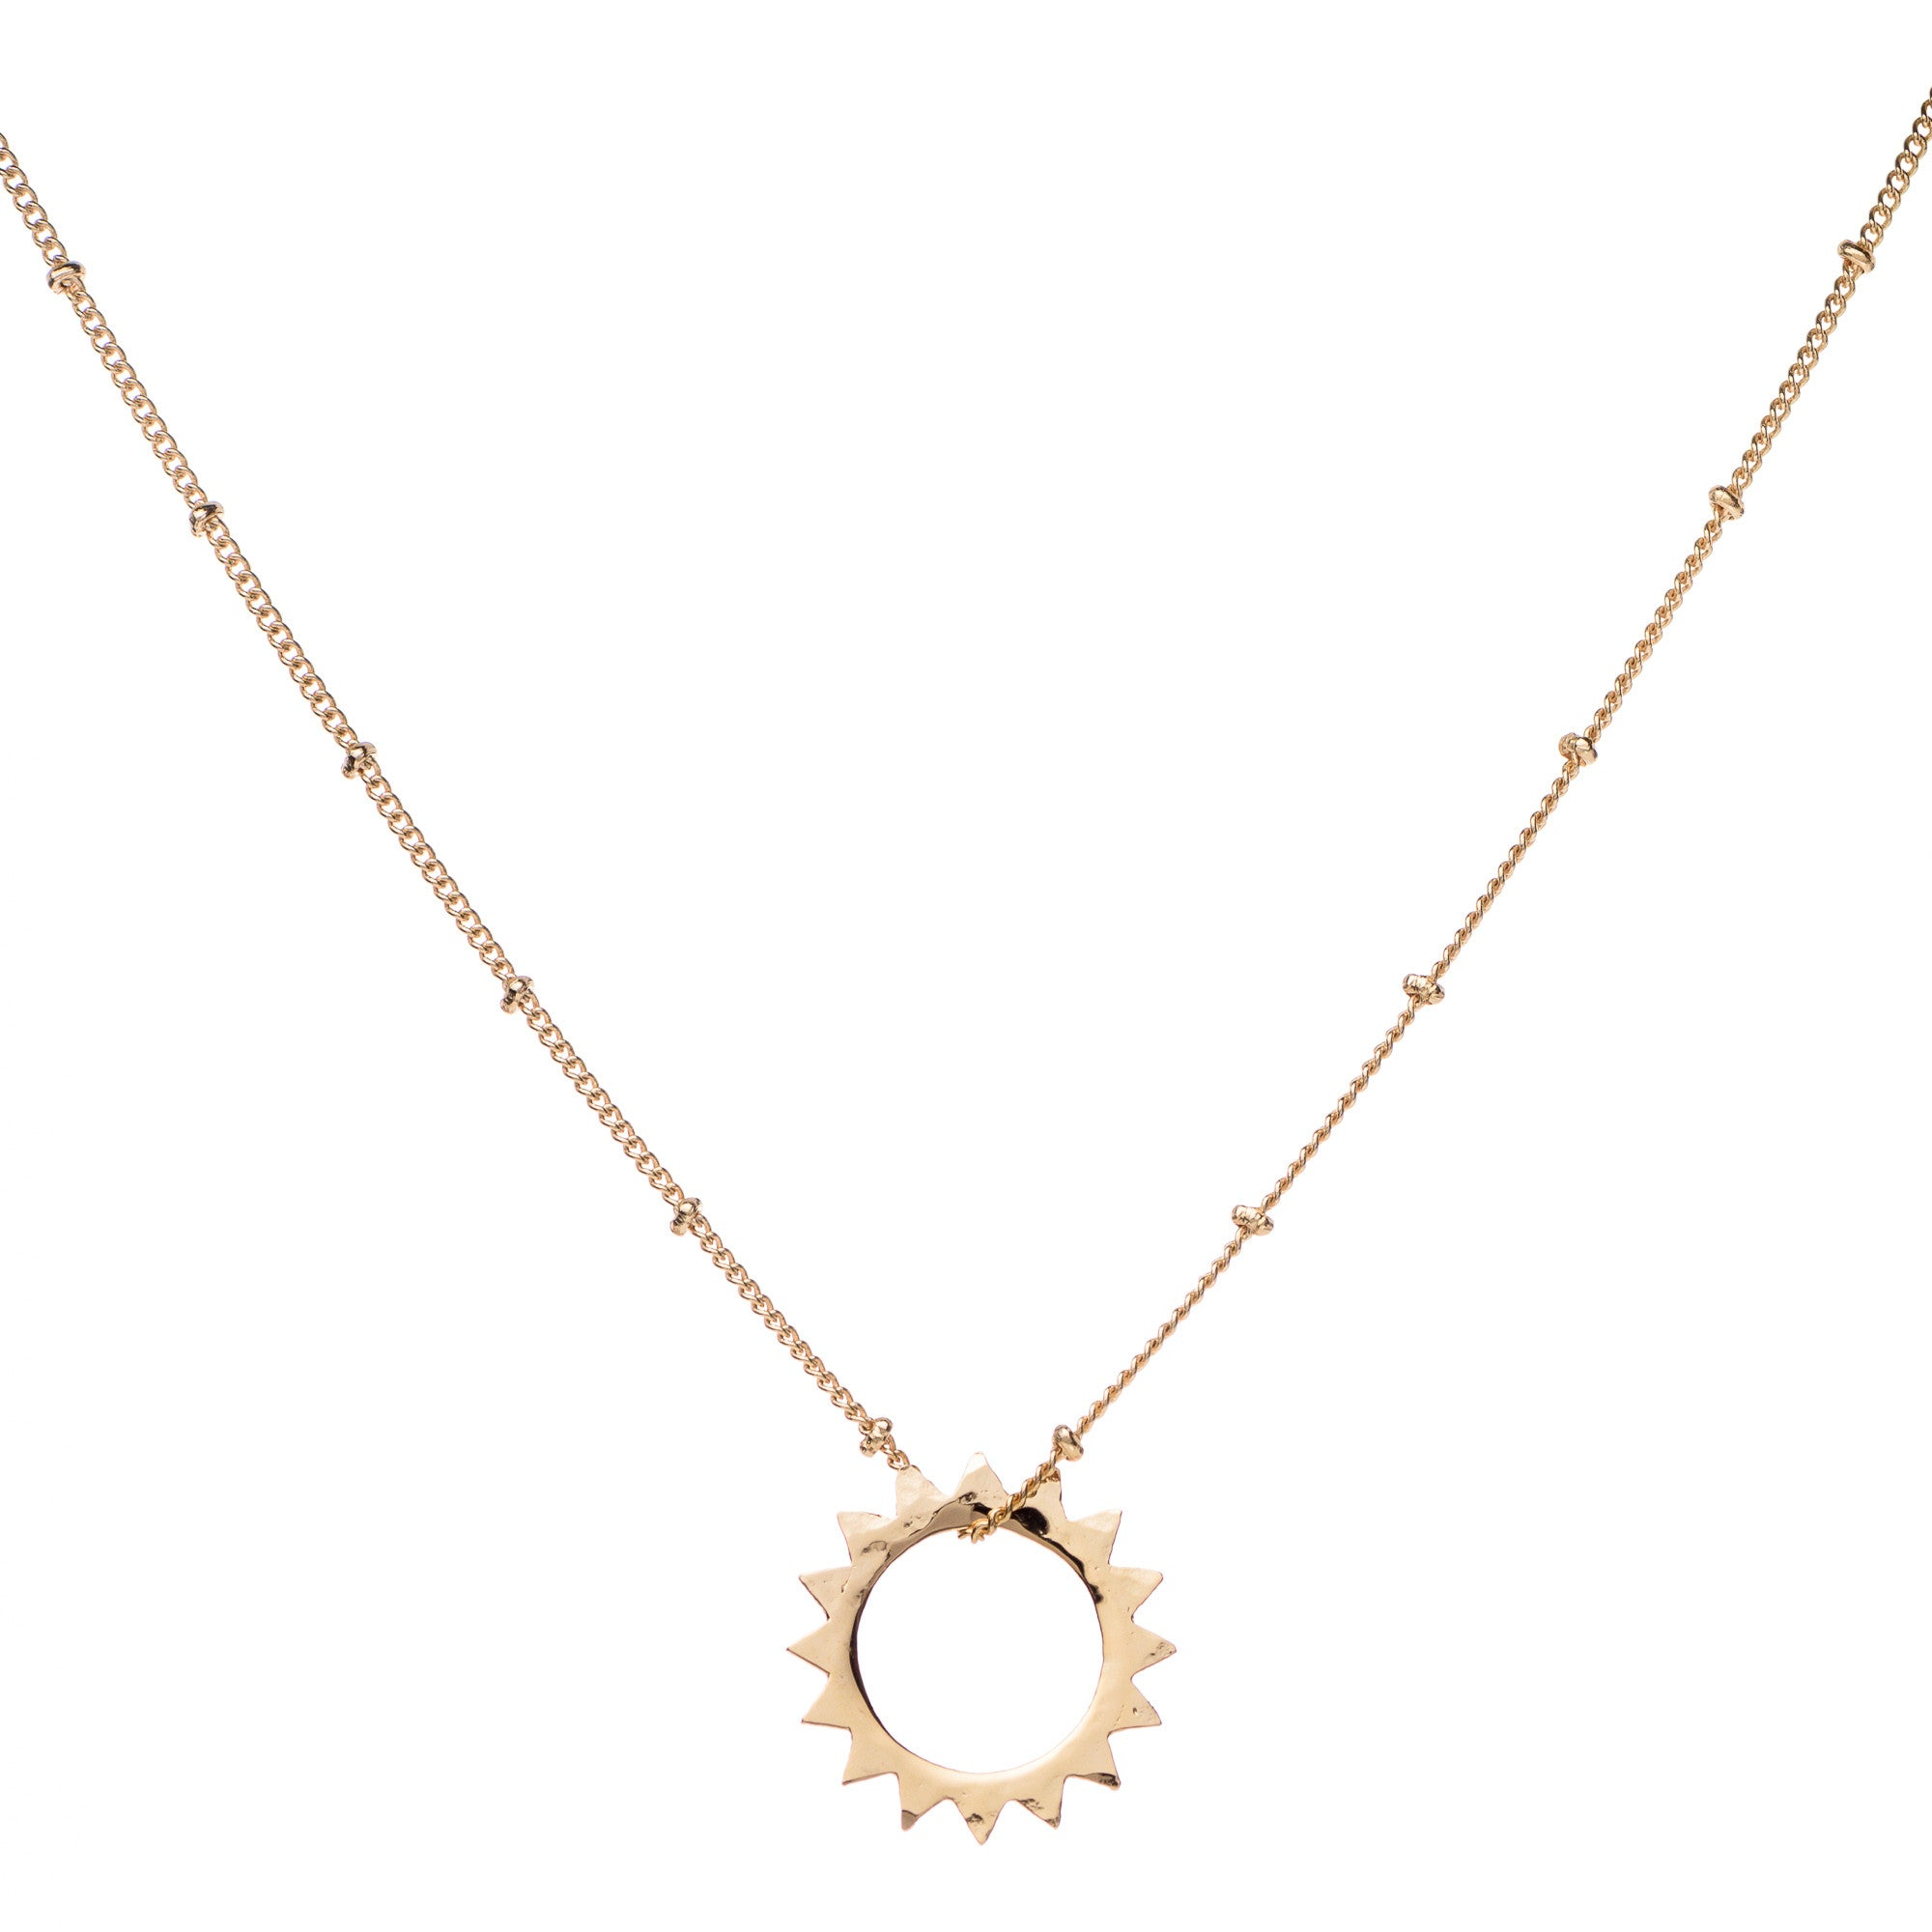 L Sun pendant & Helen Chain Necklace